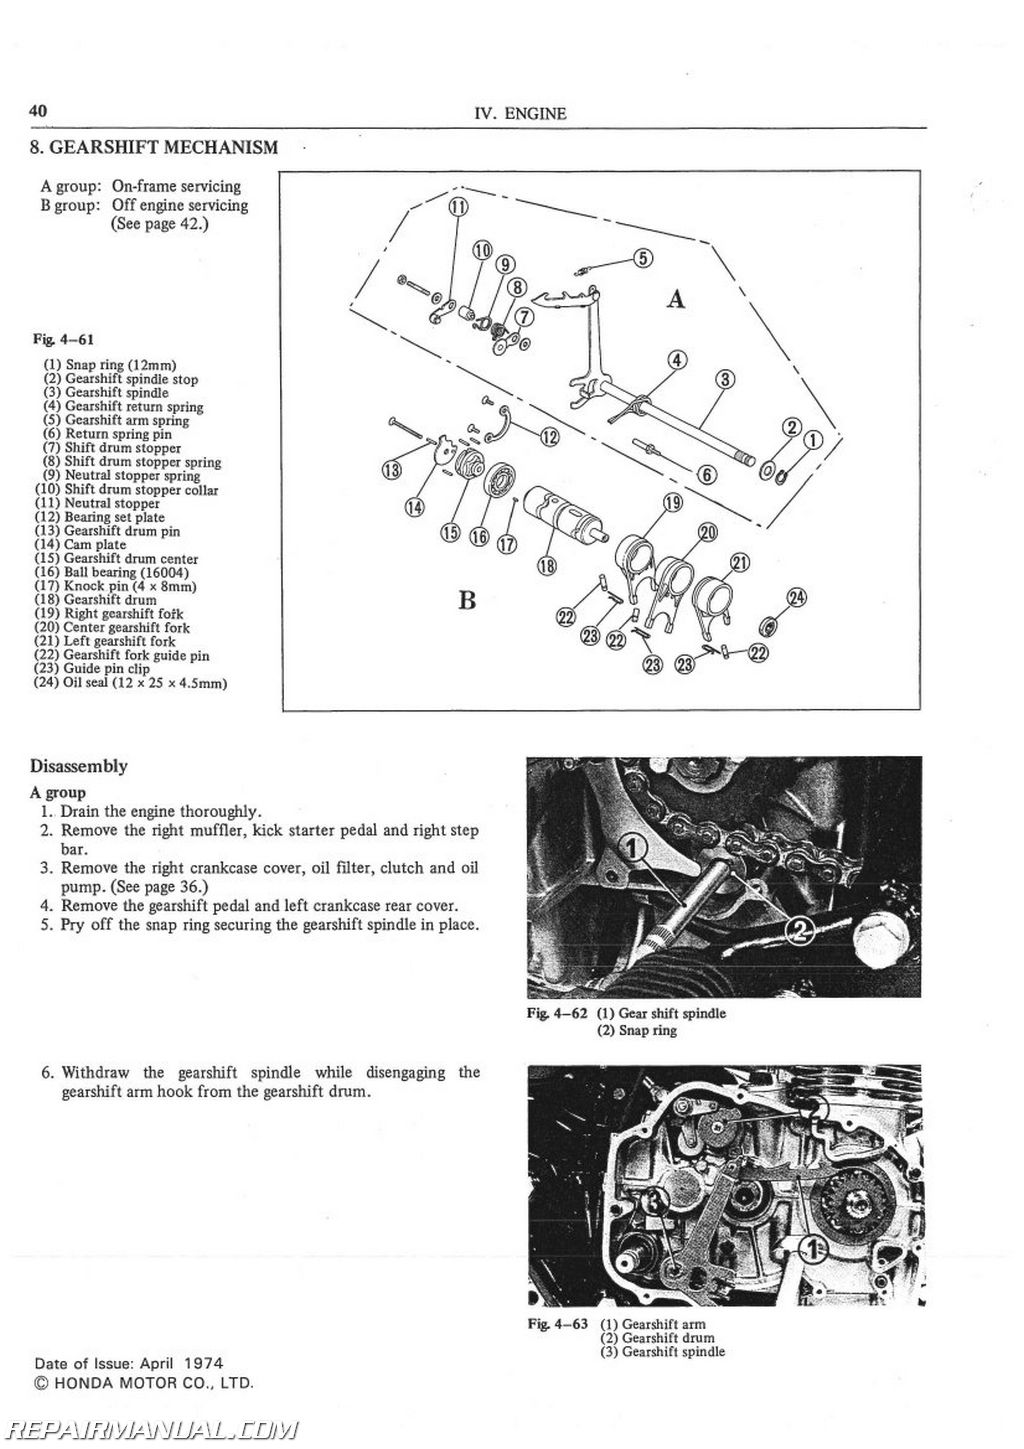 Cb500t Wiring Diagram | Wiring Library